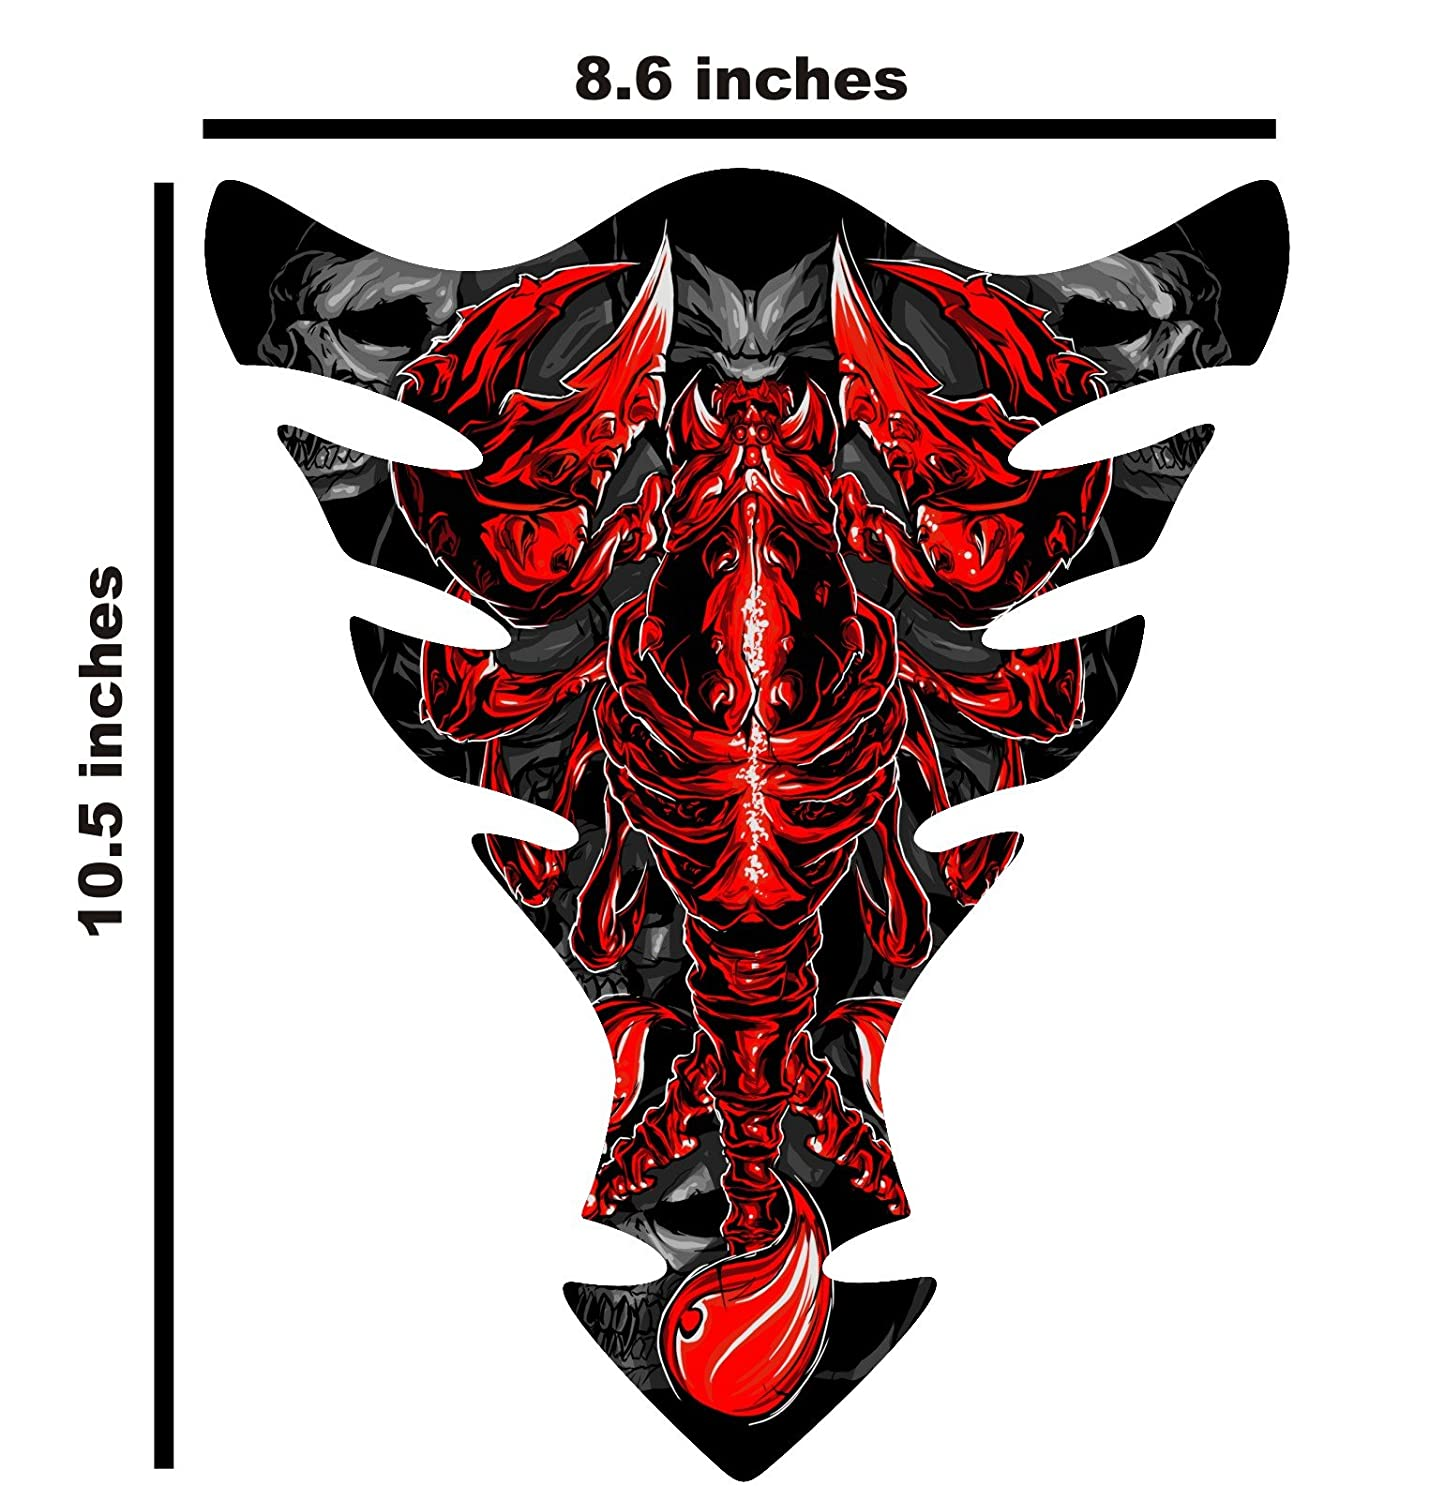 10.5 tall x 8.6 wide Can Am Can-AM Spyder F3 Scorpion Red Motorcycle Tank Pad Protector Universal Tank Pad